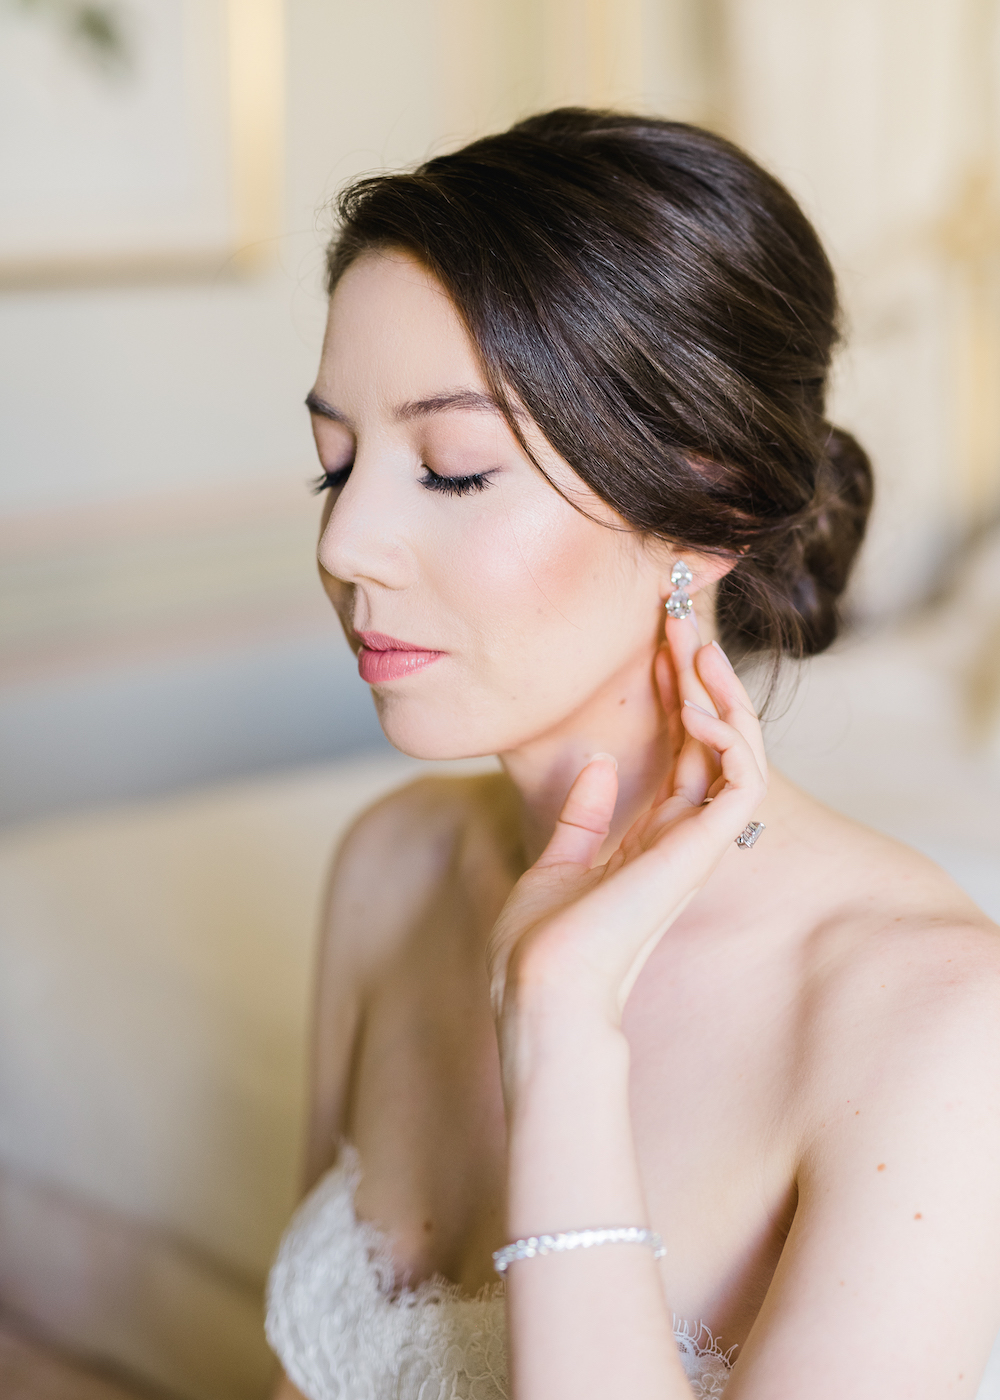 Paris wedding hair and makeup planned by Fête in France